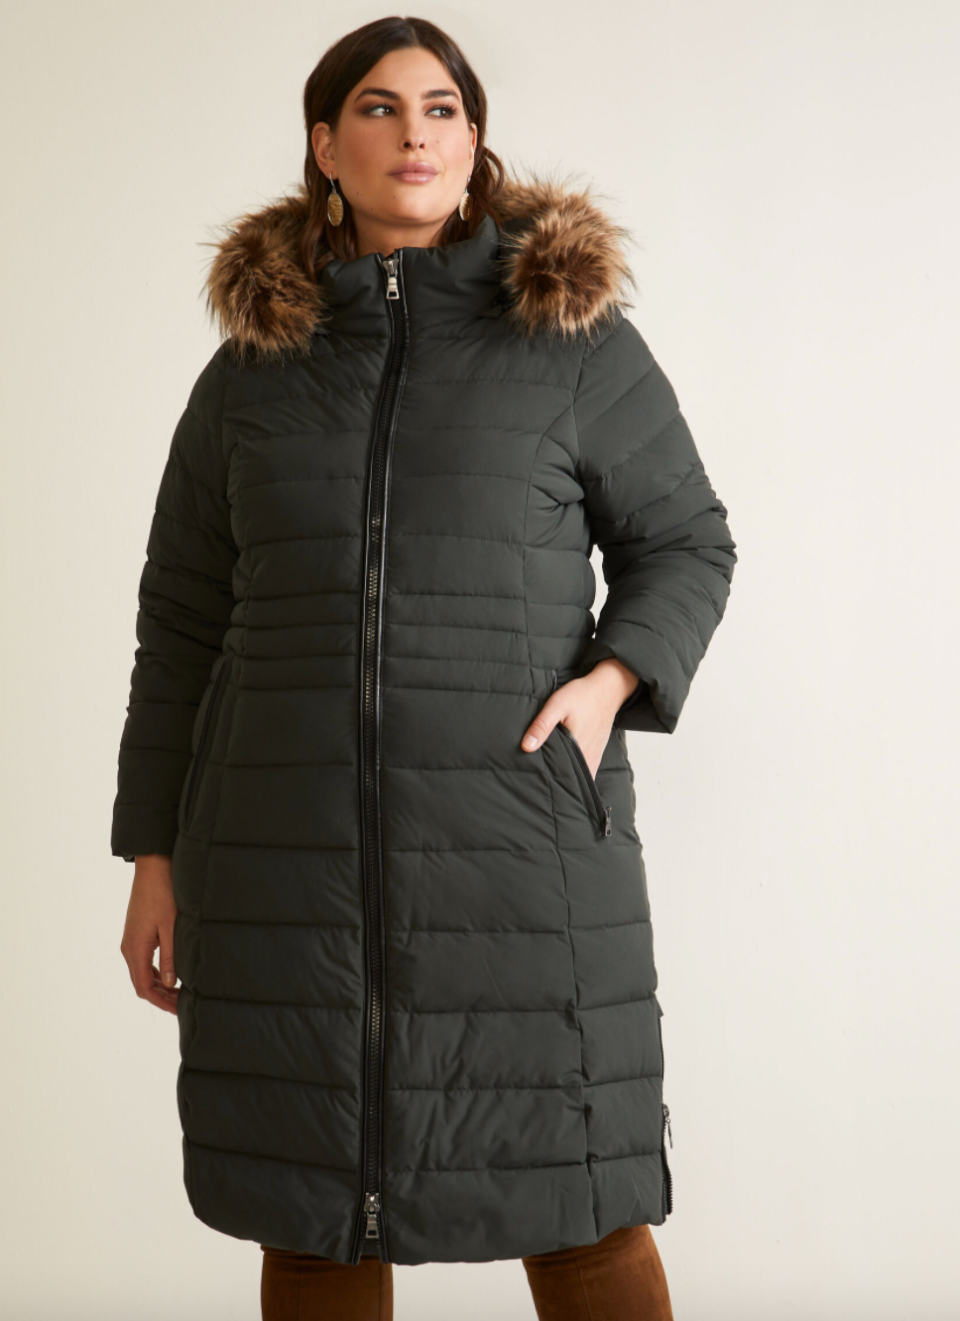 Nuage Stretch Vegan Down Quilted Coat in Green (Photo via Laura)